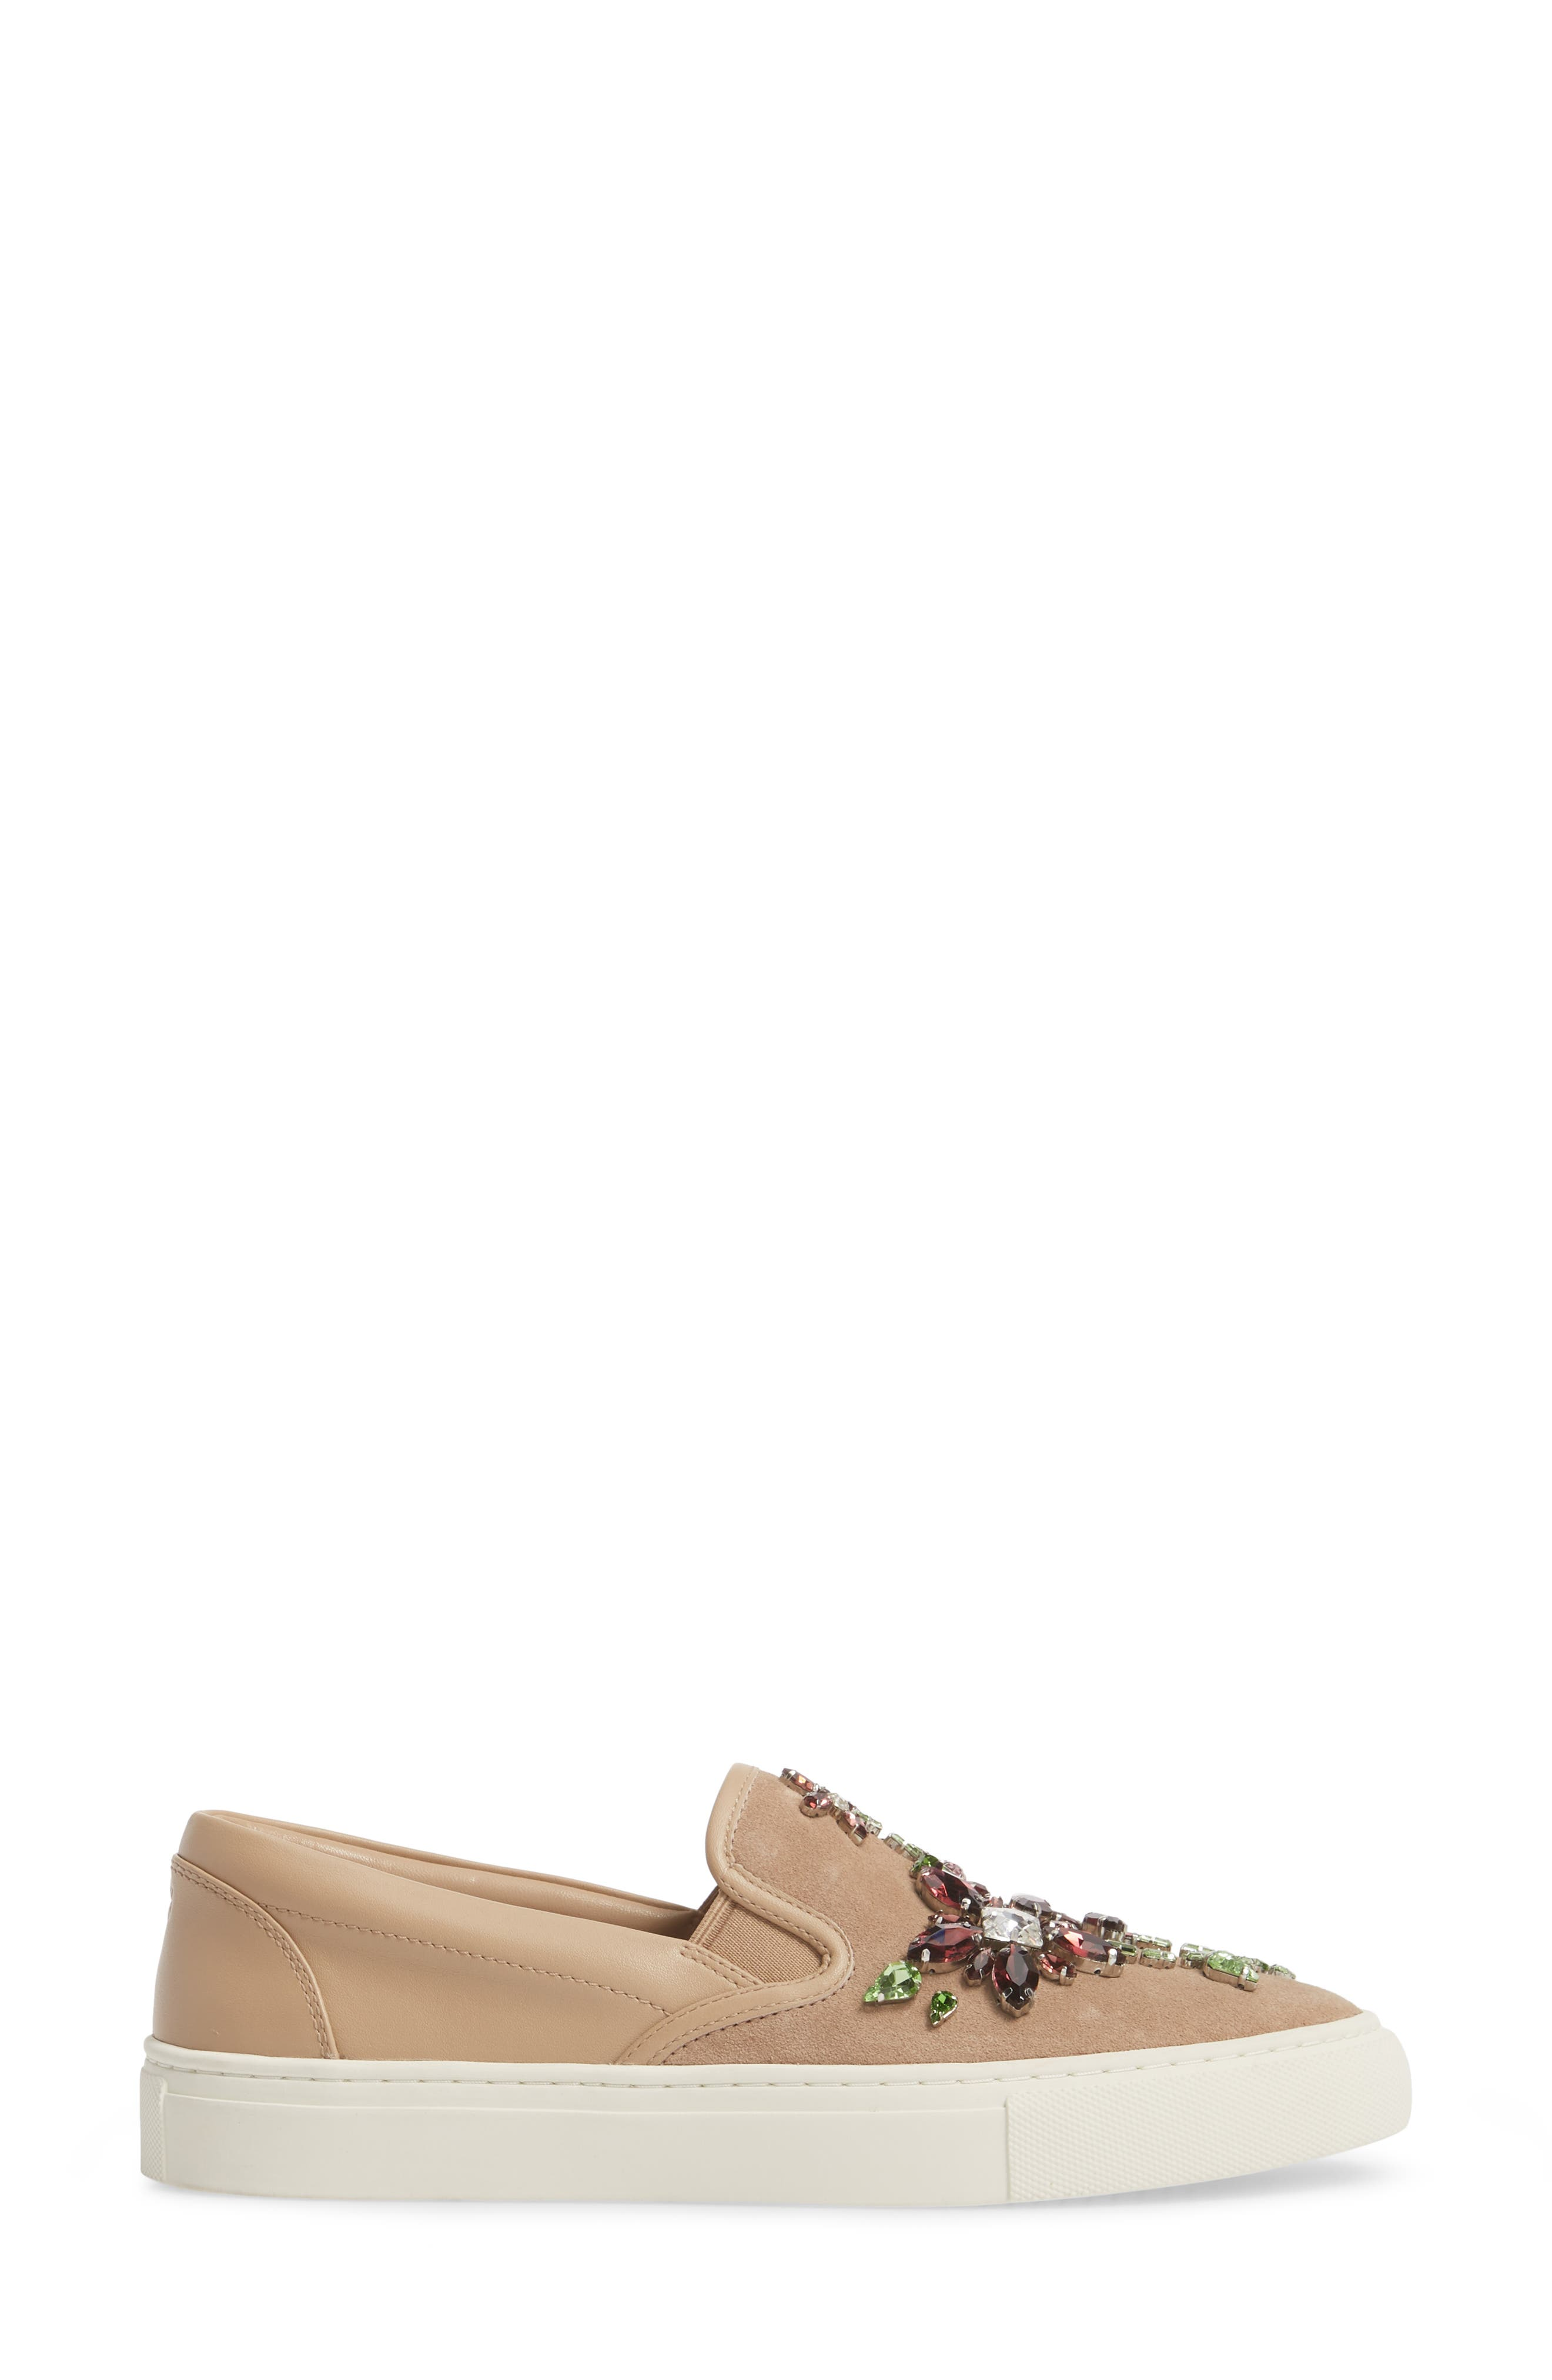 Meadow Embellished Slip-On Sneaker,                             Alternate thumbnail 3, color,                             Perfect Sand/ Multi